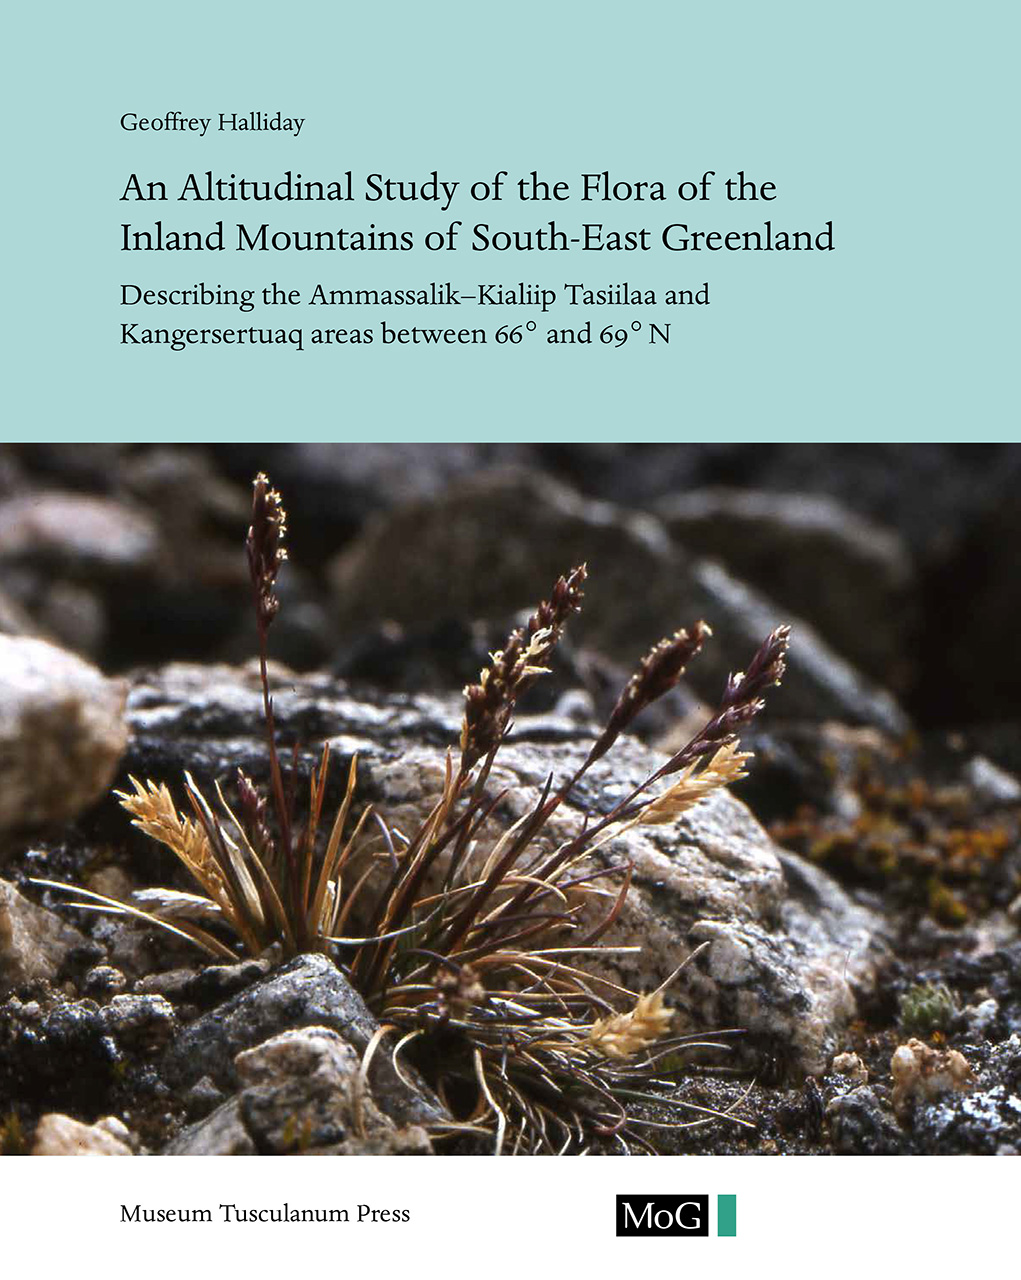 An Altitudinal Study of the Flora of the Inland Mountains of South-East Greenland: Describing the Ammassalik–Kialiip Tasiilaa and Kangersertuaq Areas between 66° and 69°N